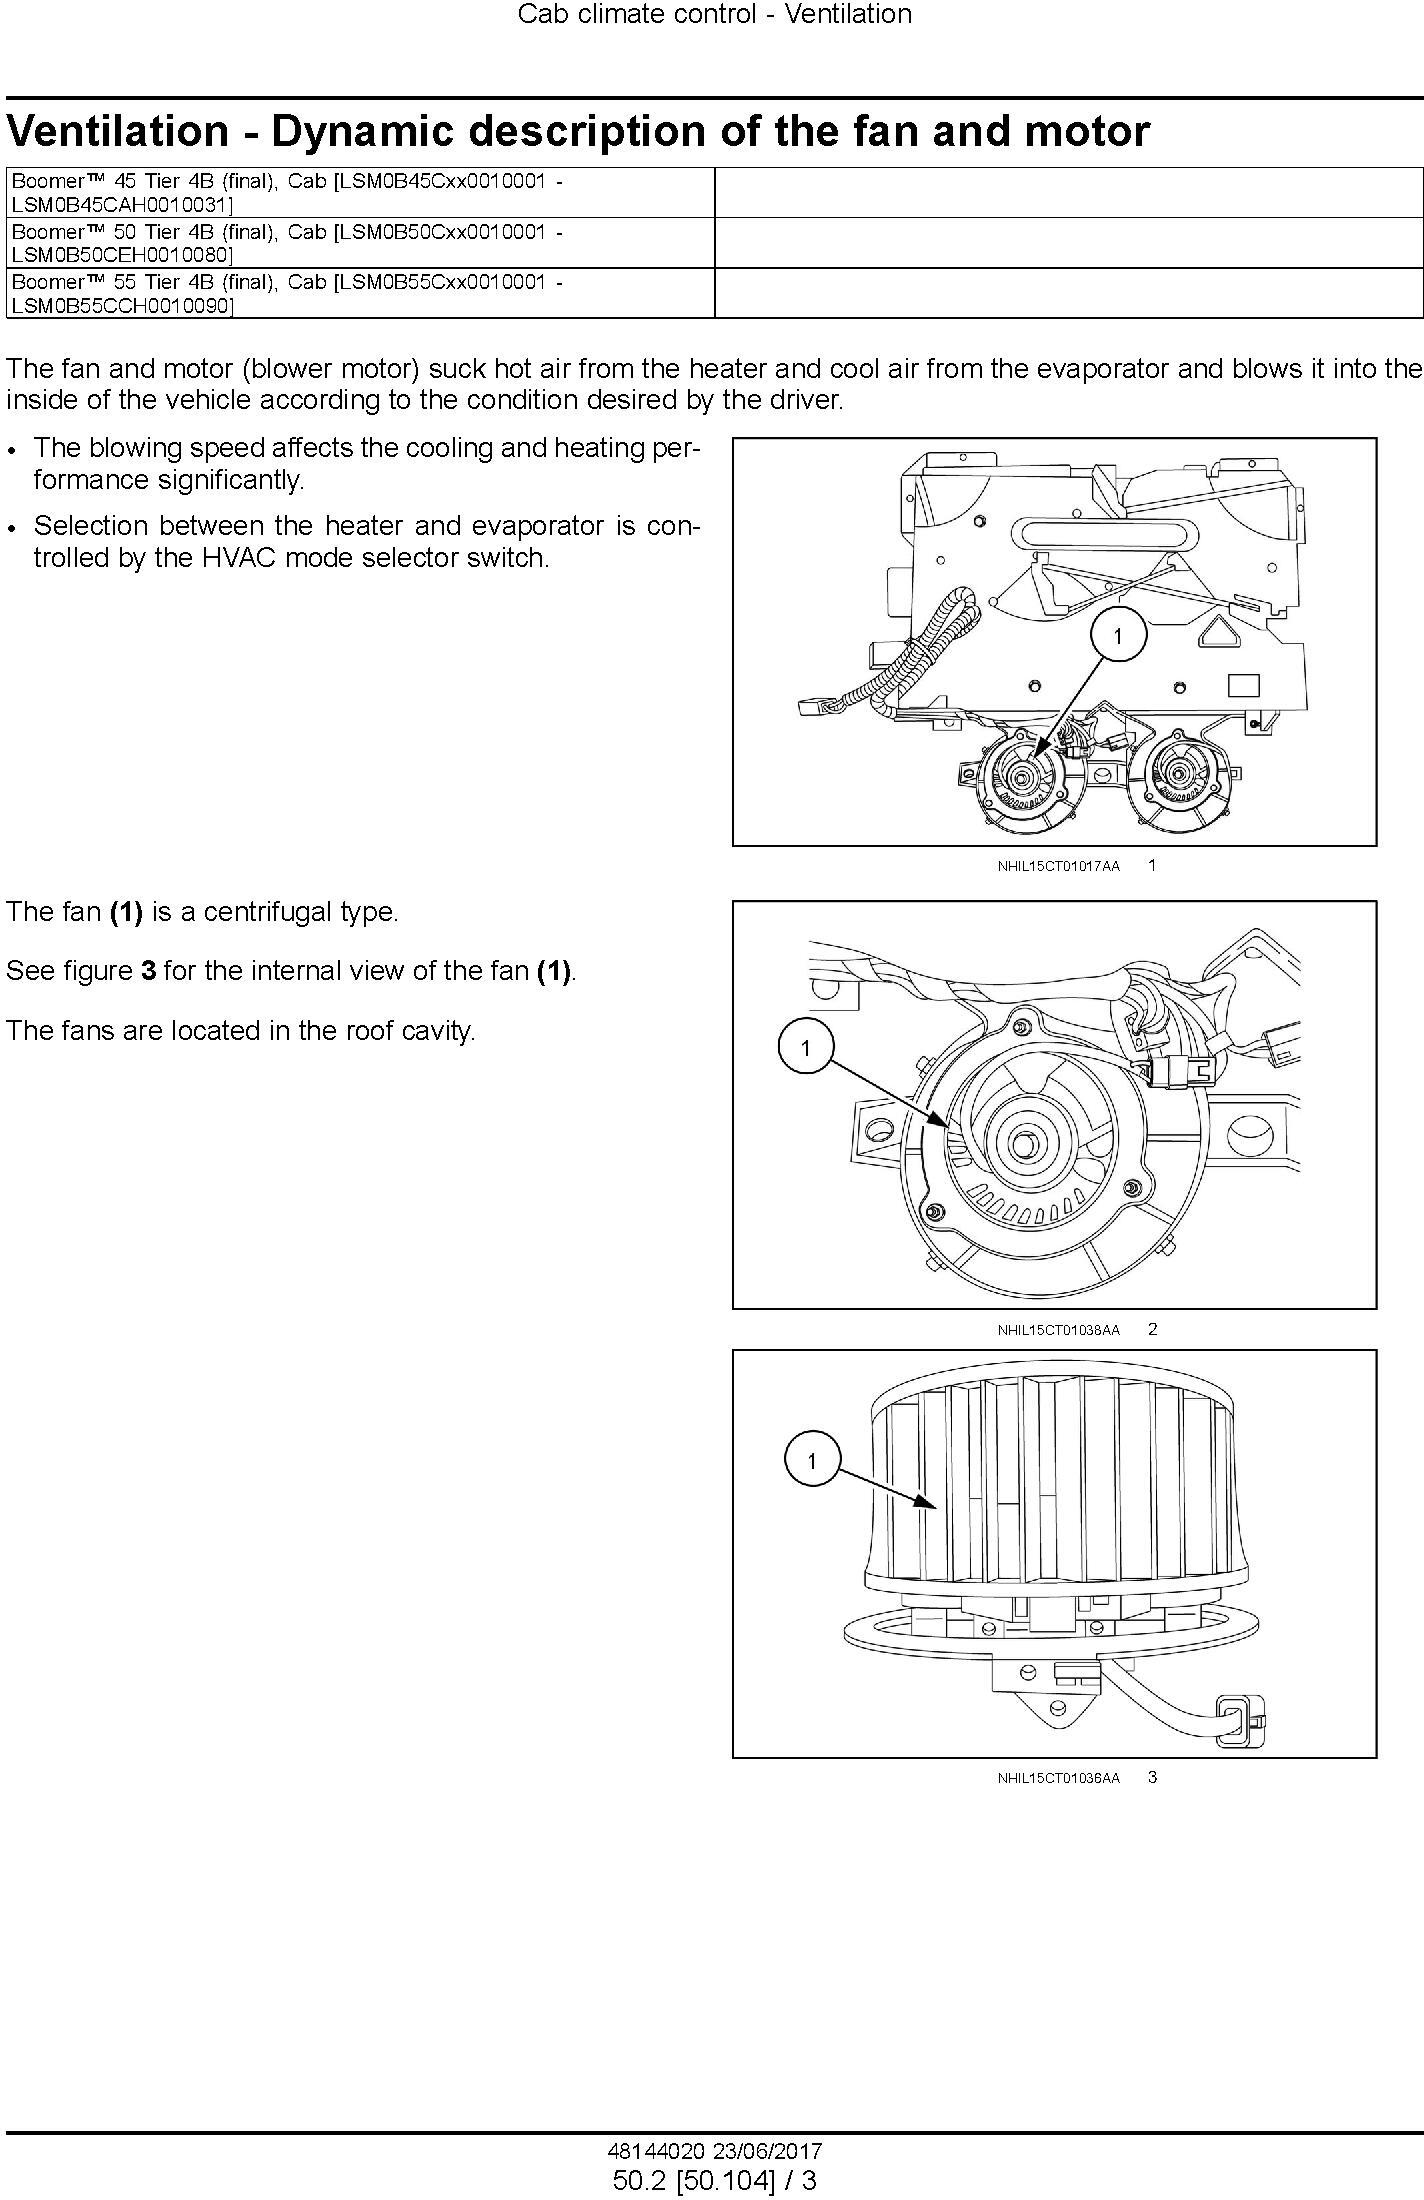 New Holland Boomer 45, Boomer 50, Boomer 55 Tier 4B final Compact Tractor Service Manual (USA) - 2